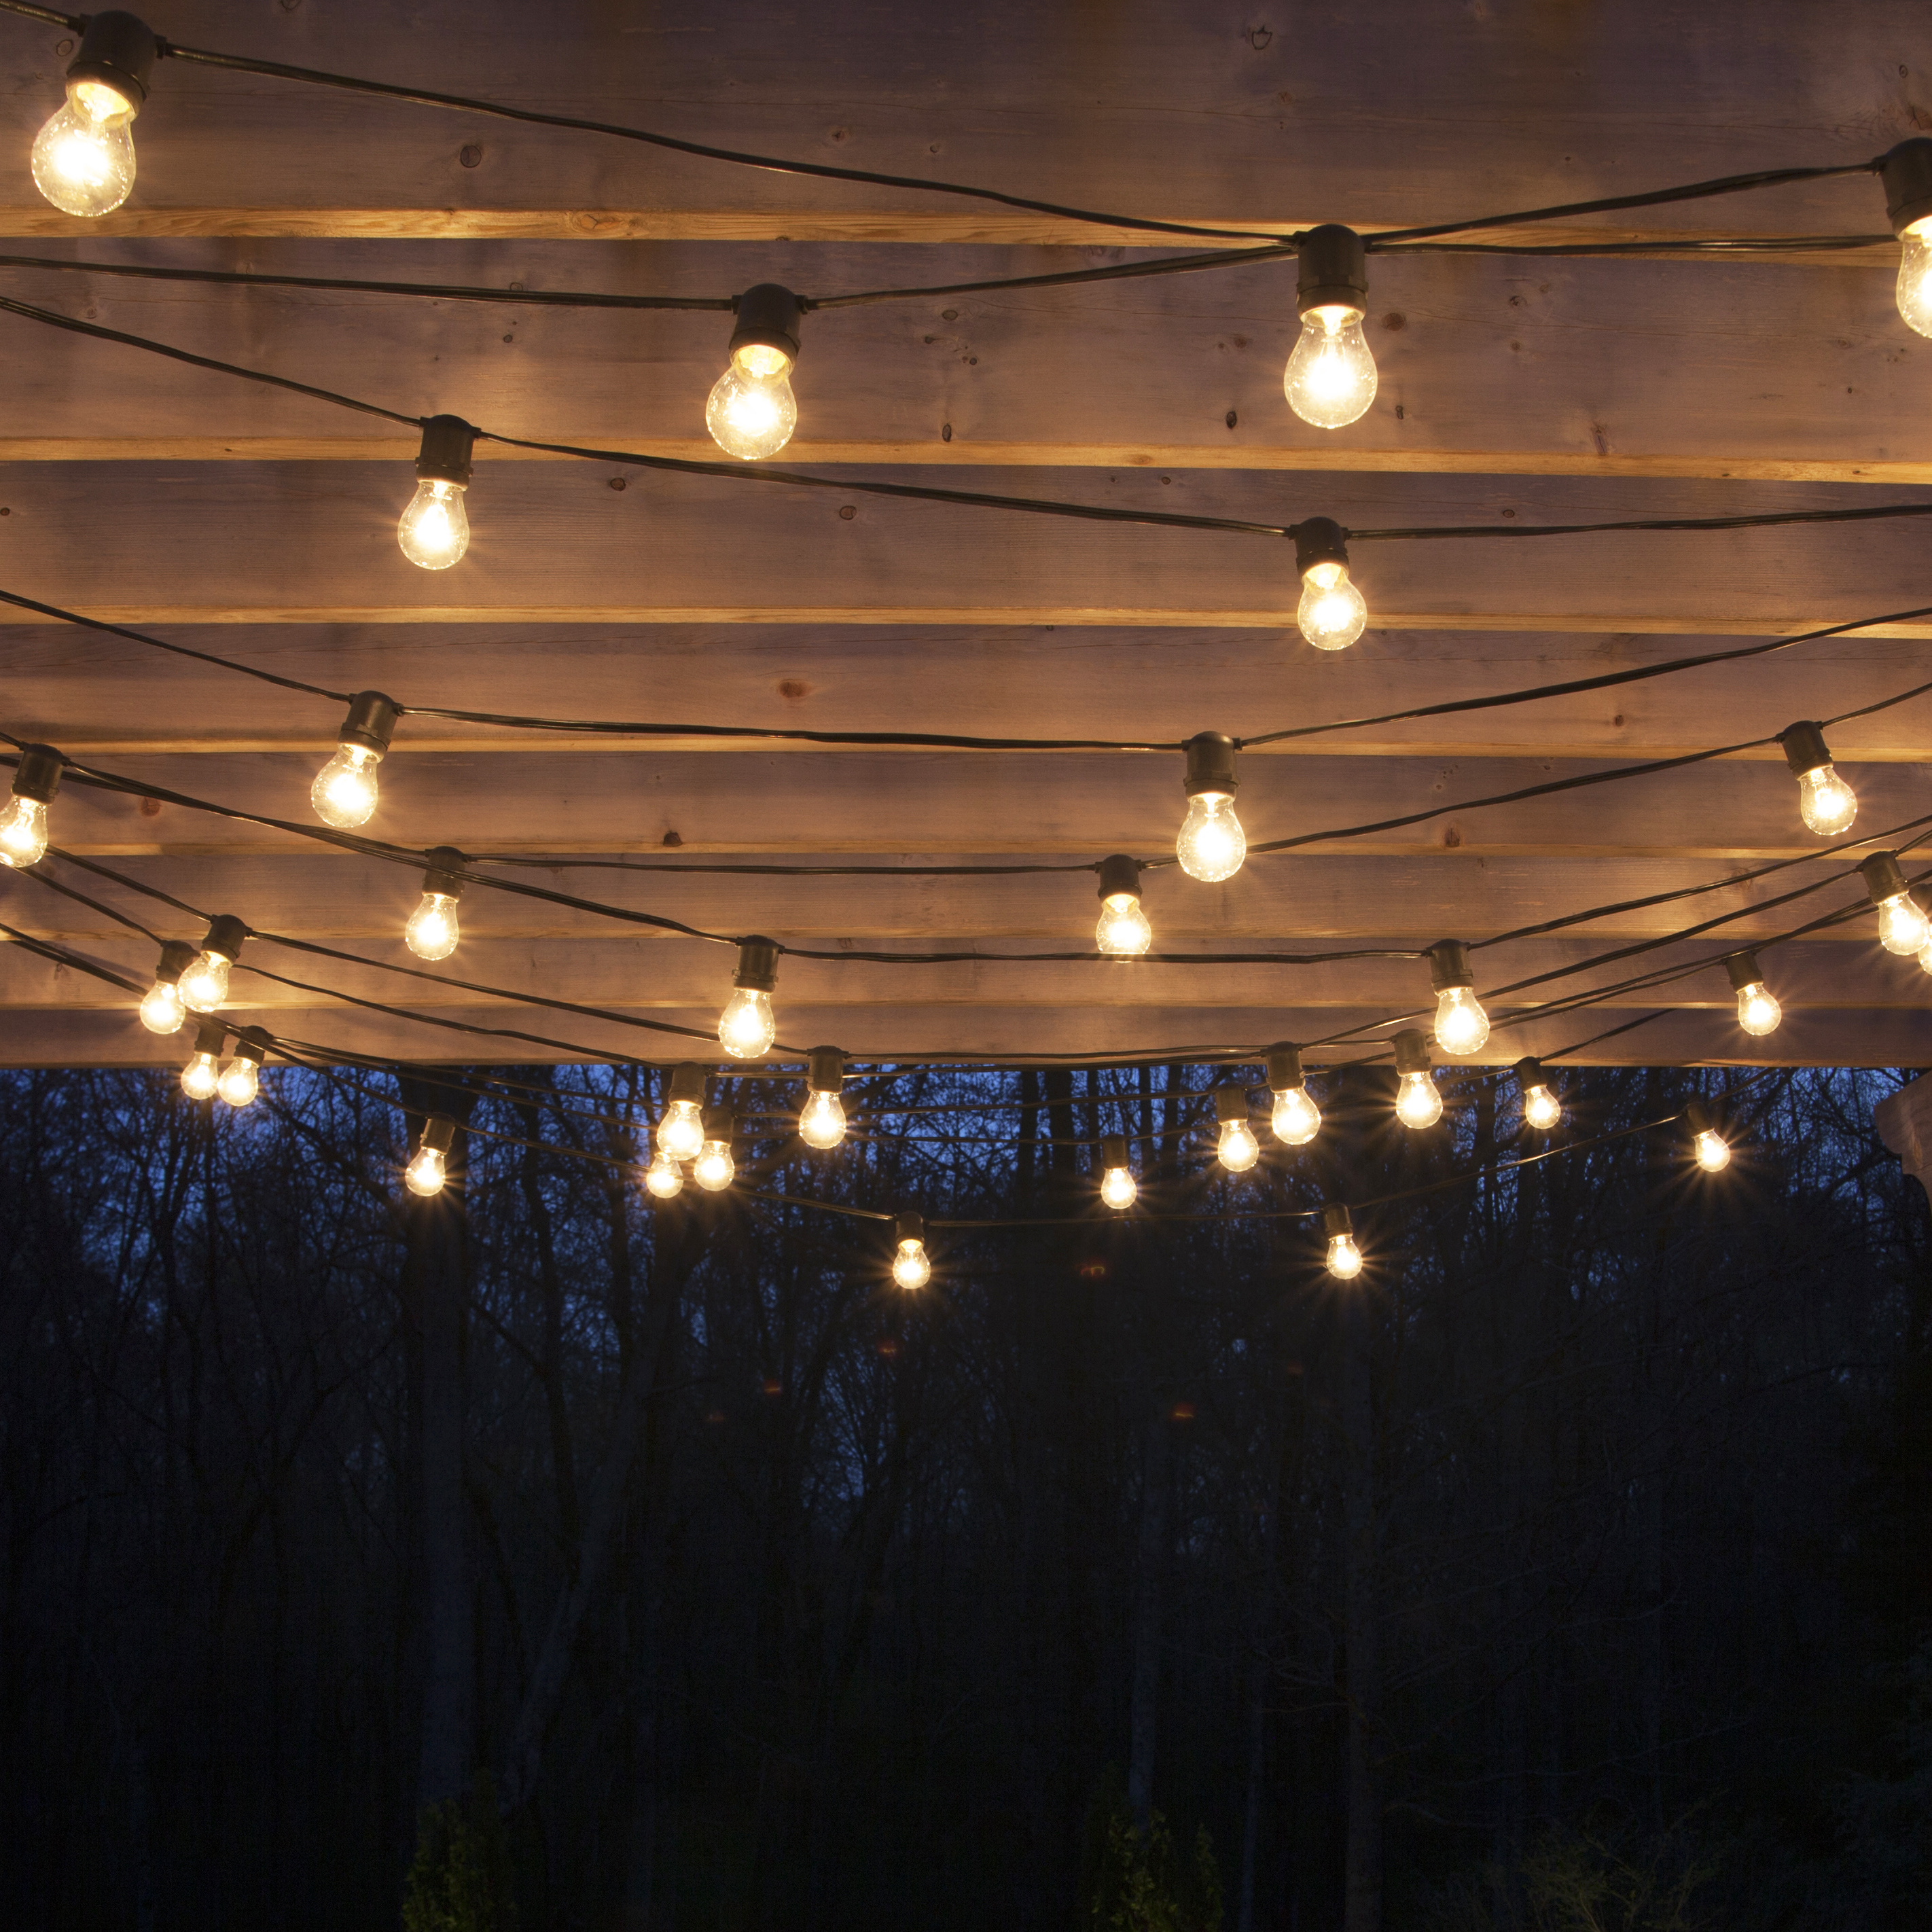 28 Outdoor Lighting Diys To Brighten Up Your Summer: 5 Ways To Get Your Condo Patio Ready For Summer